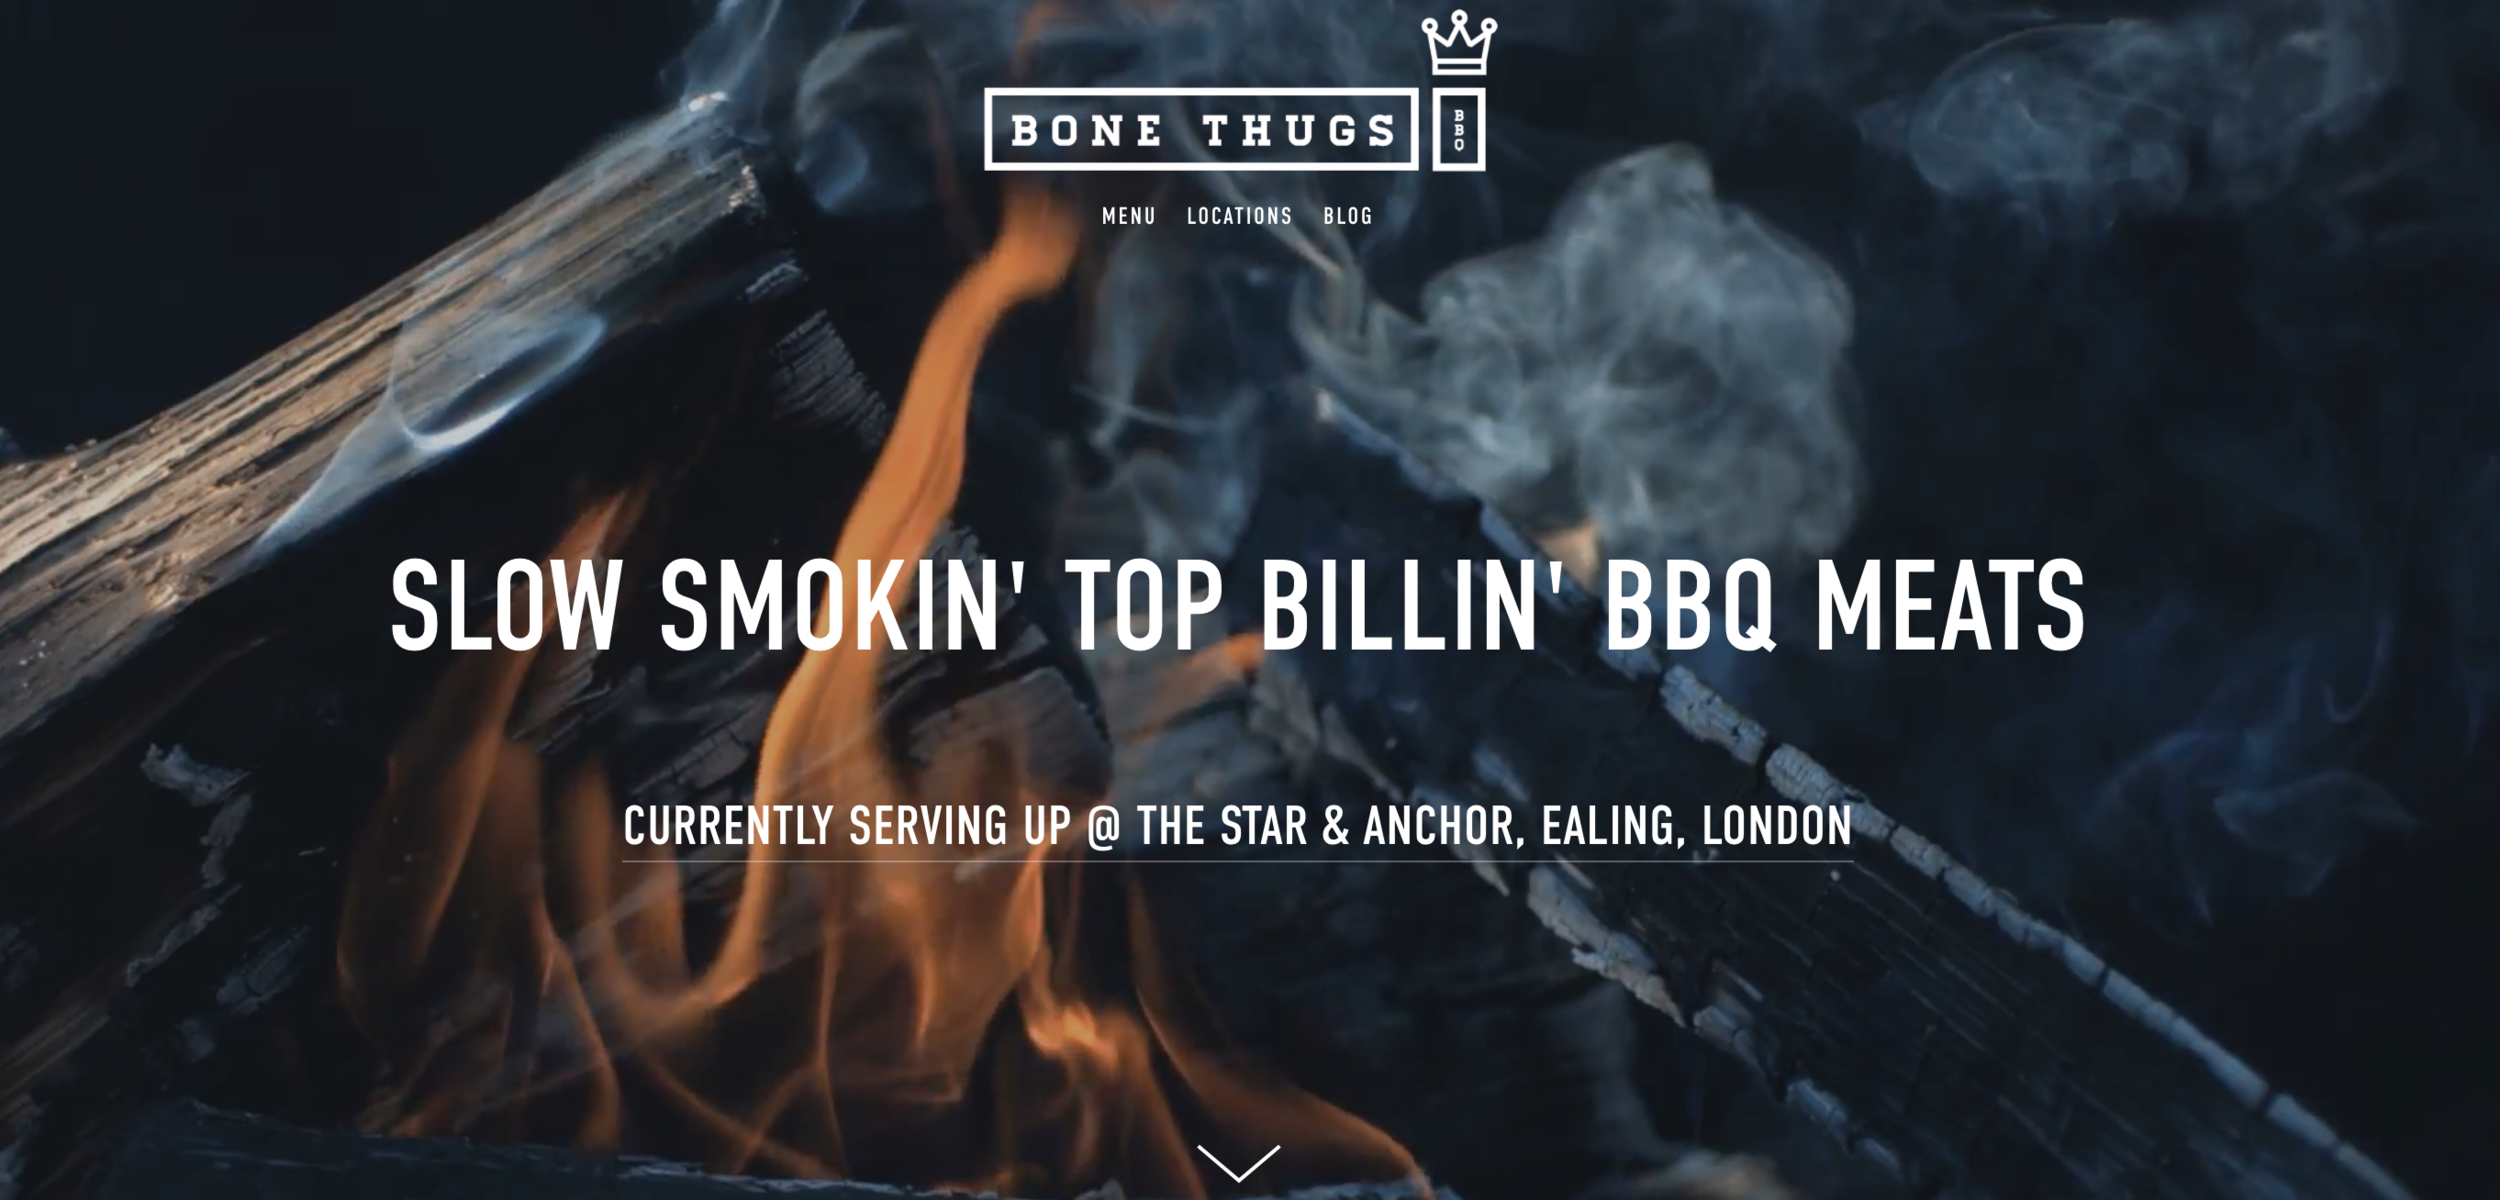 Bone Thugs BBQ website live